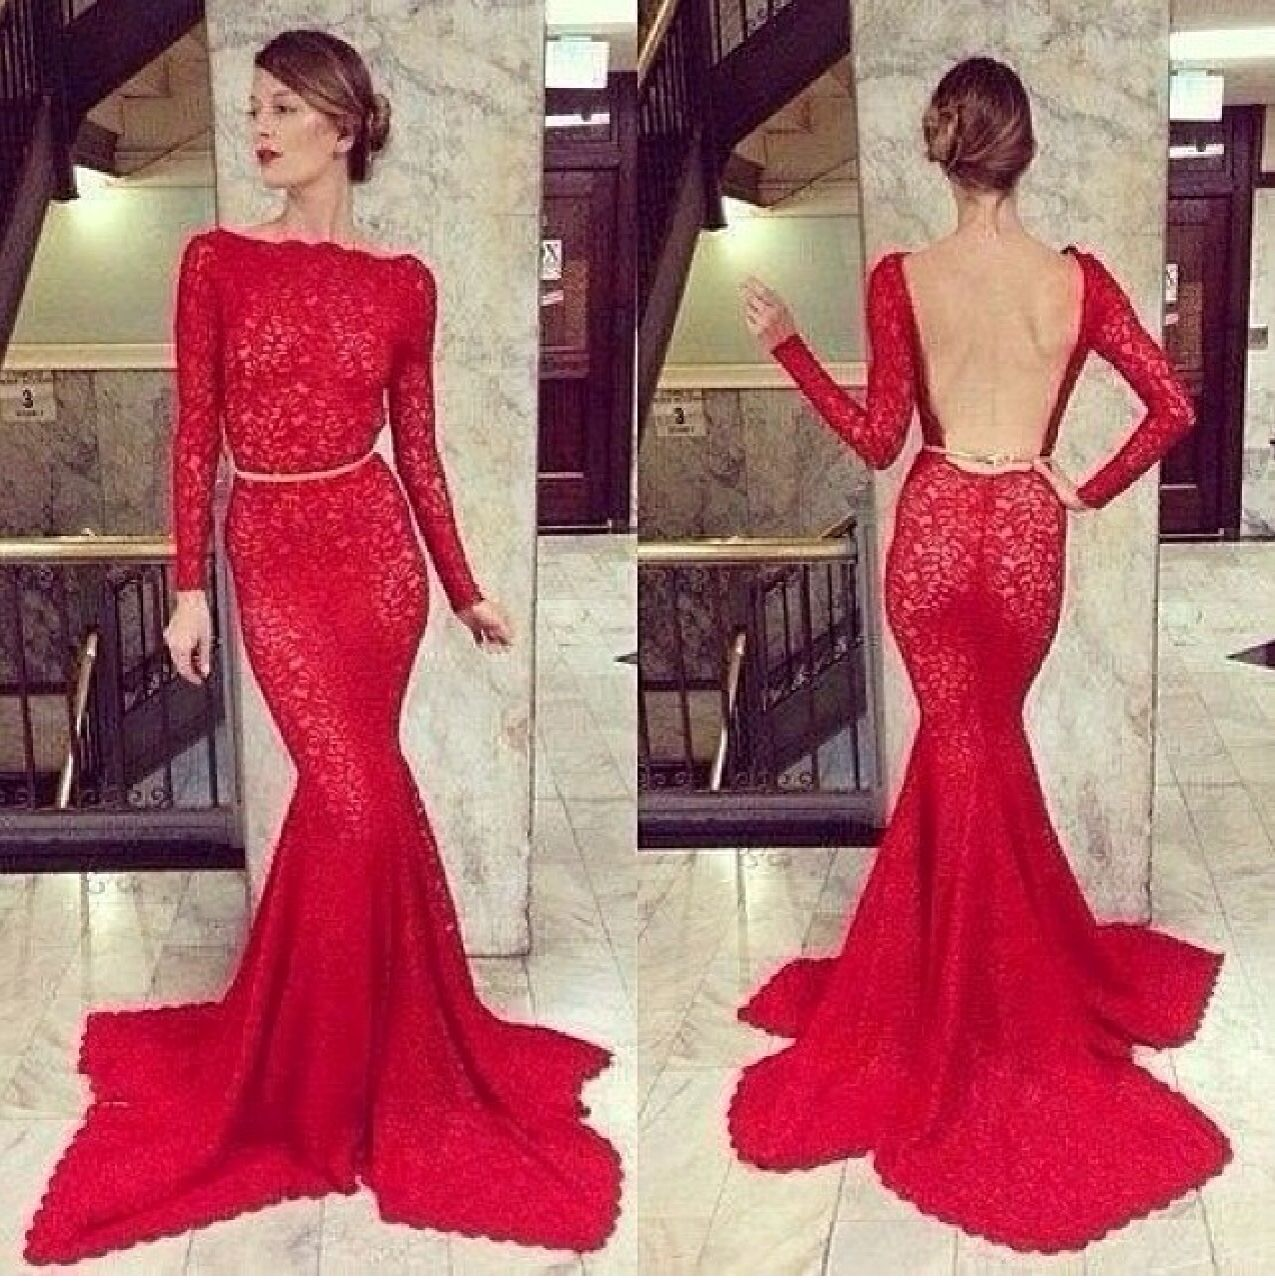 Luxurious red gown the thing i love pinterest red gowns gowns